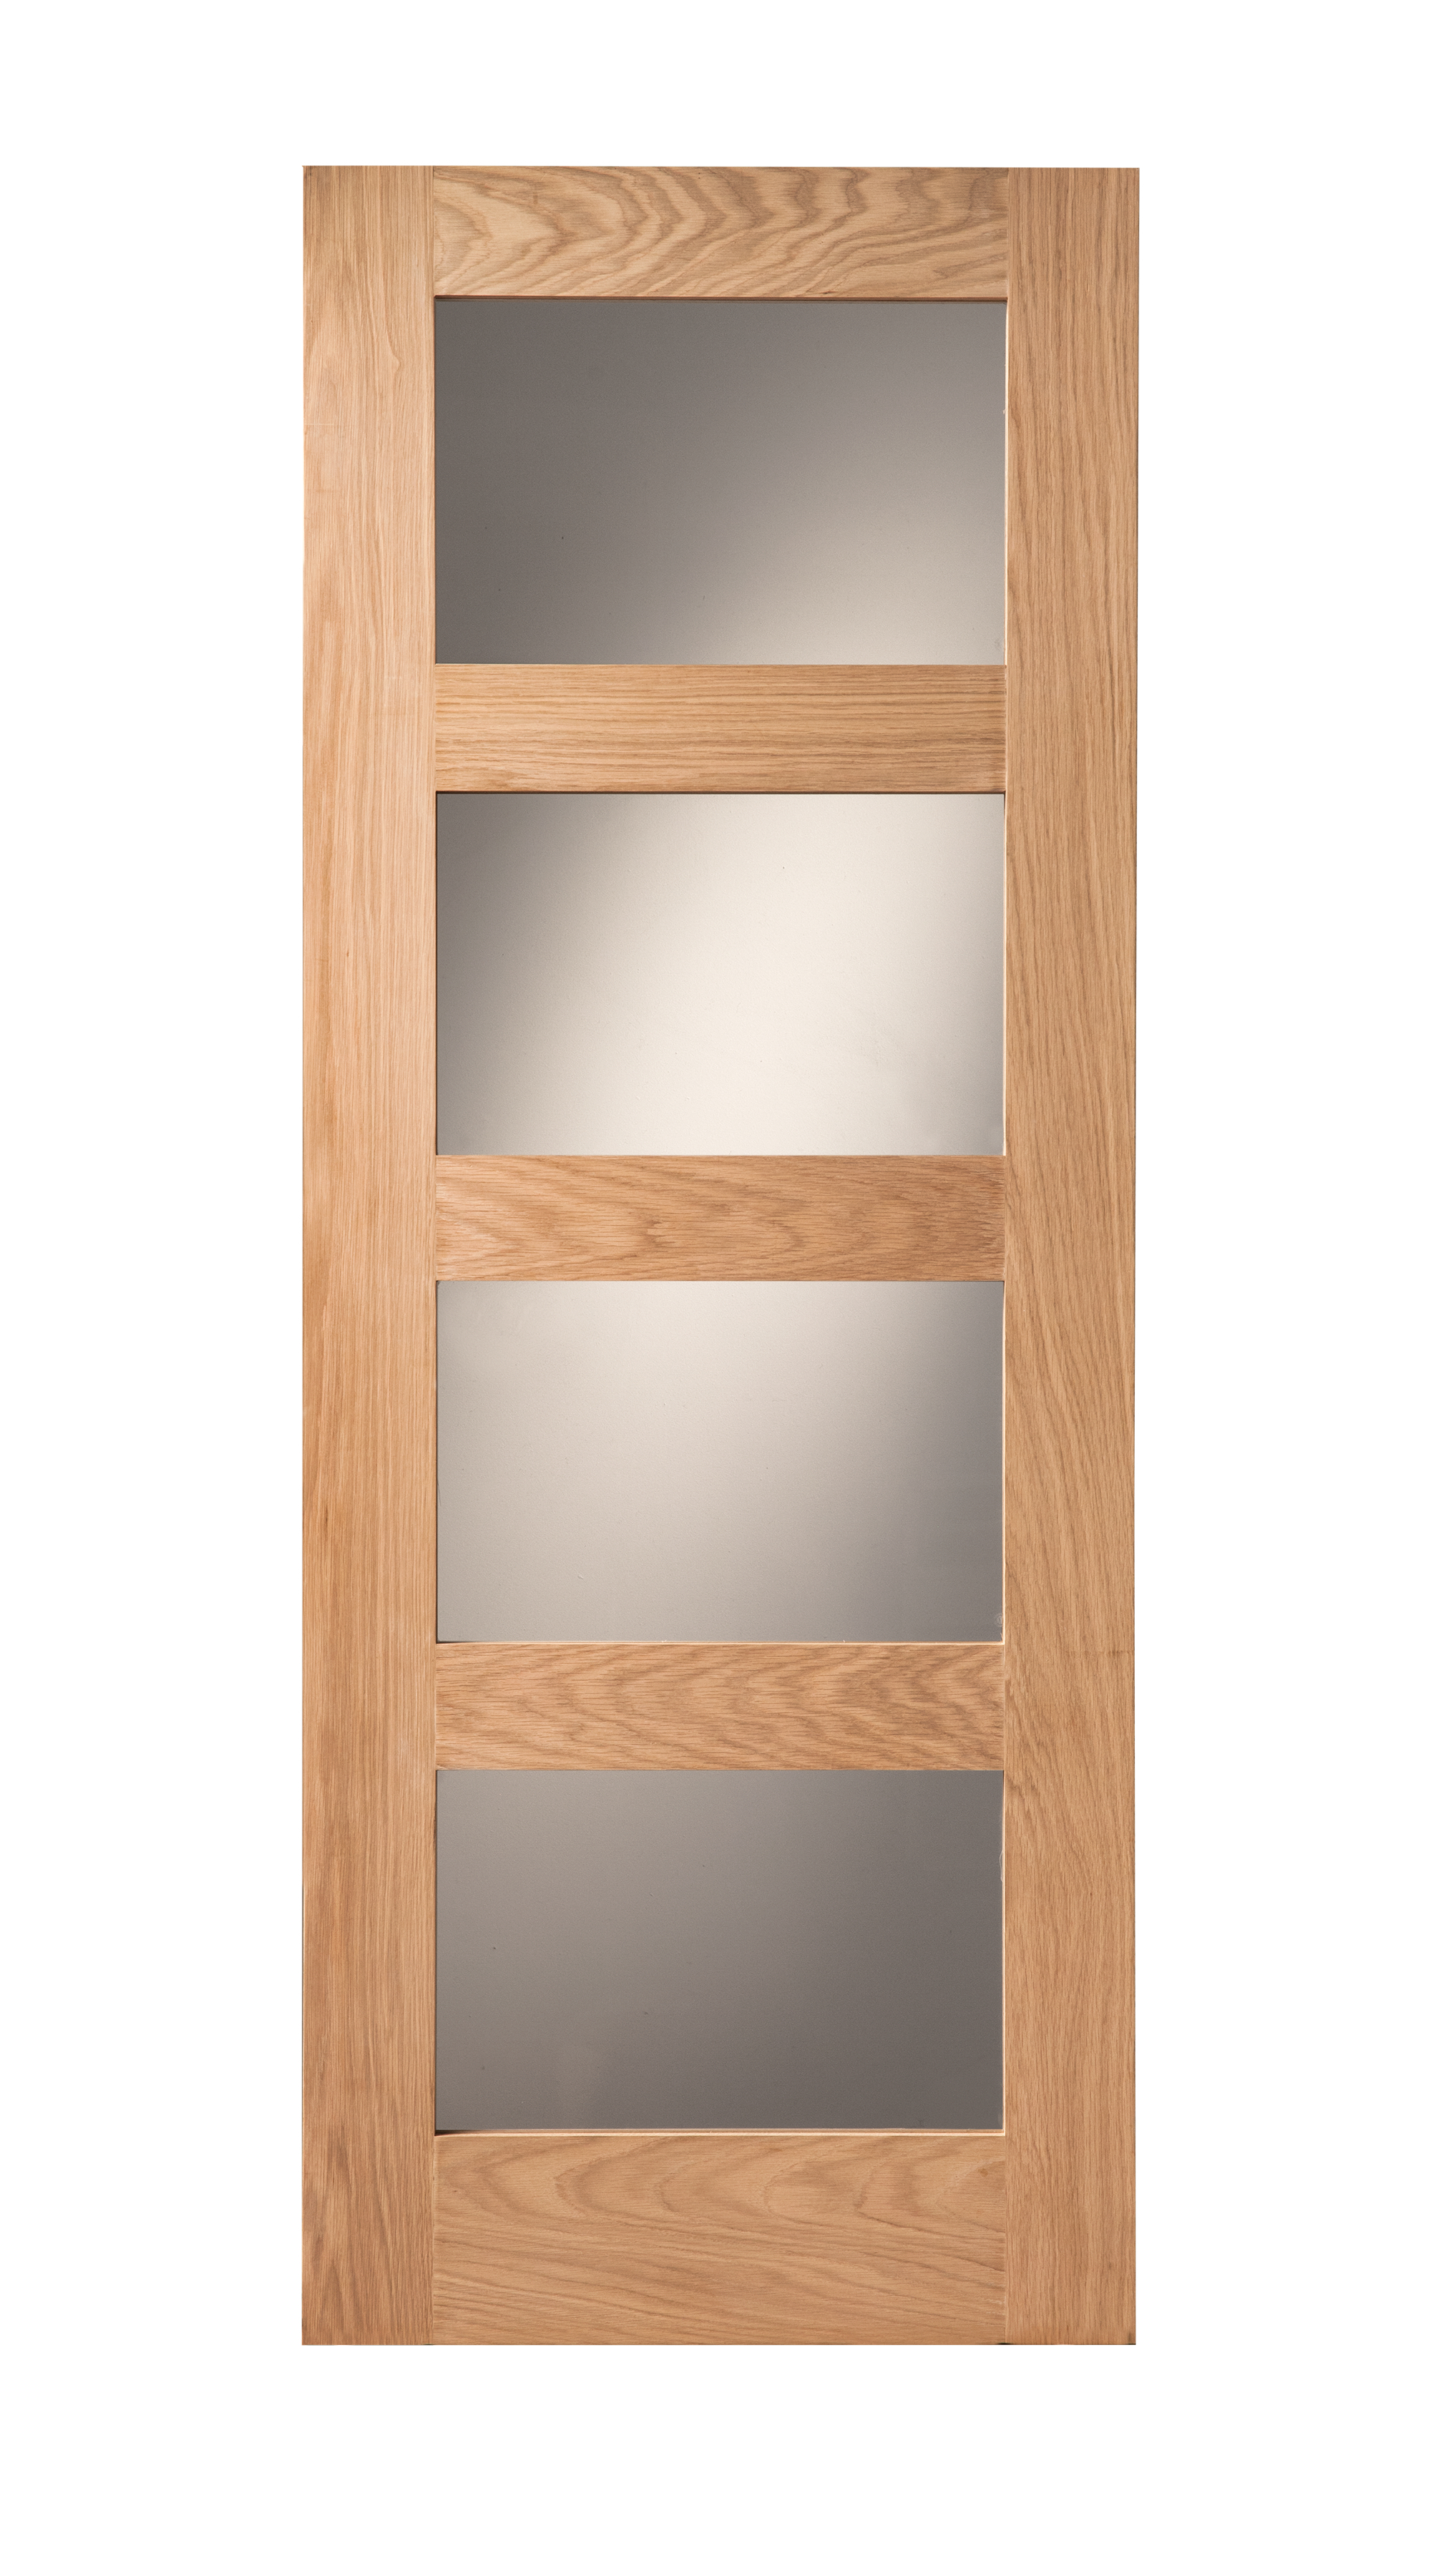 Ordinaire Cheshire 4 Light Shaker Clear Glazed Oak Internal Door Image ...